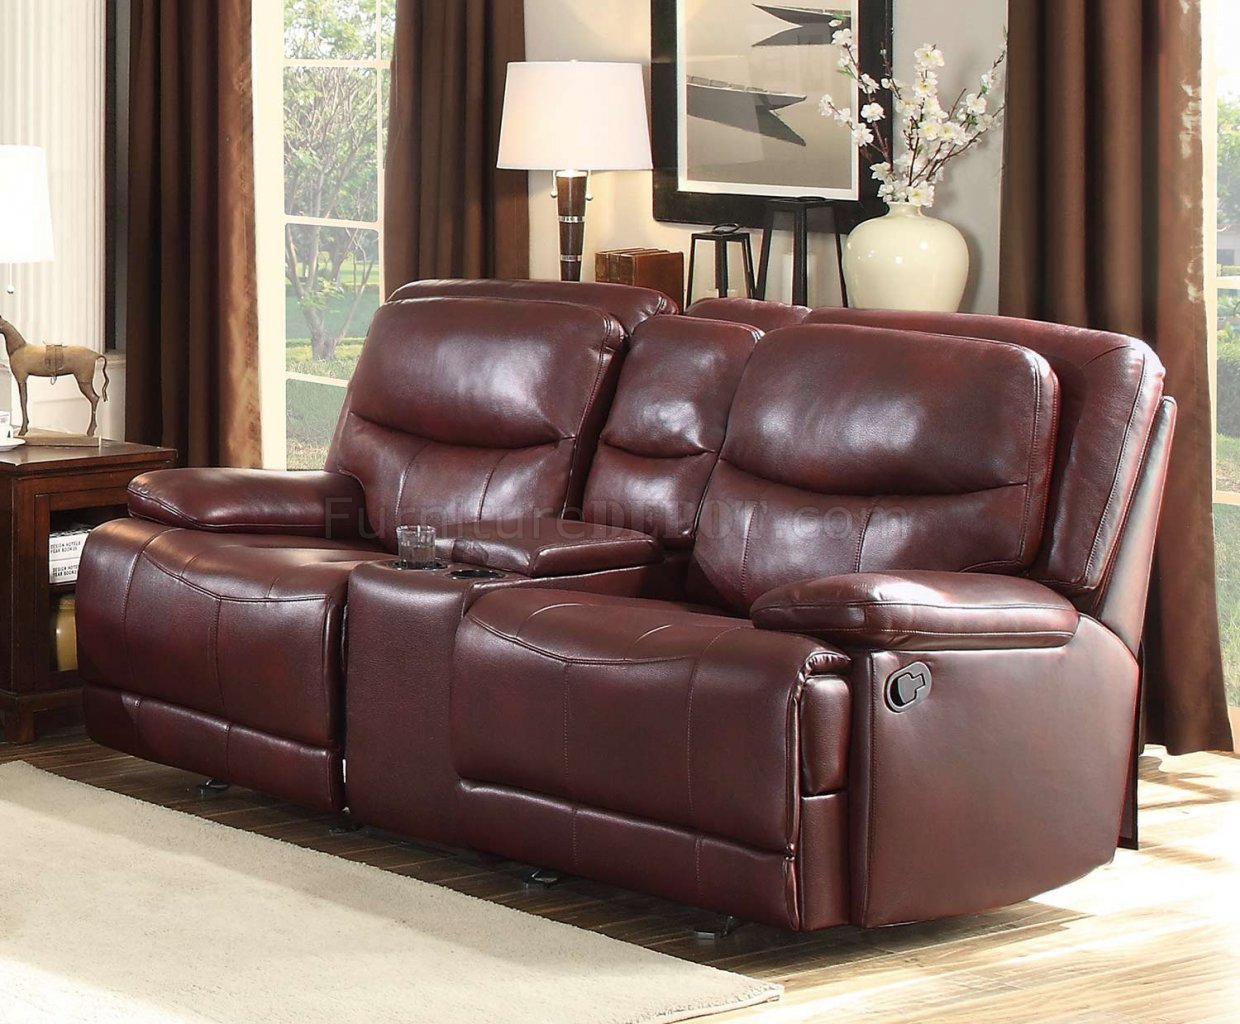 liberty sofa and motion loveseat fabric corner sofas glasgow risco 8599bgd in burgundy by homelegance w options